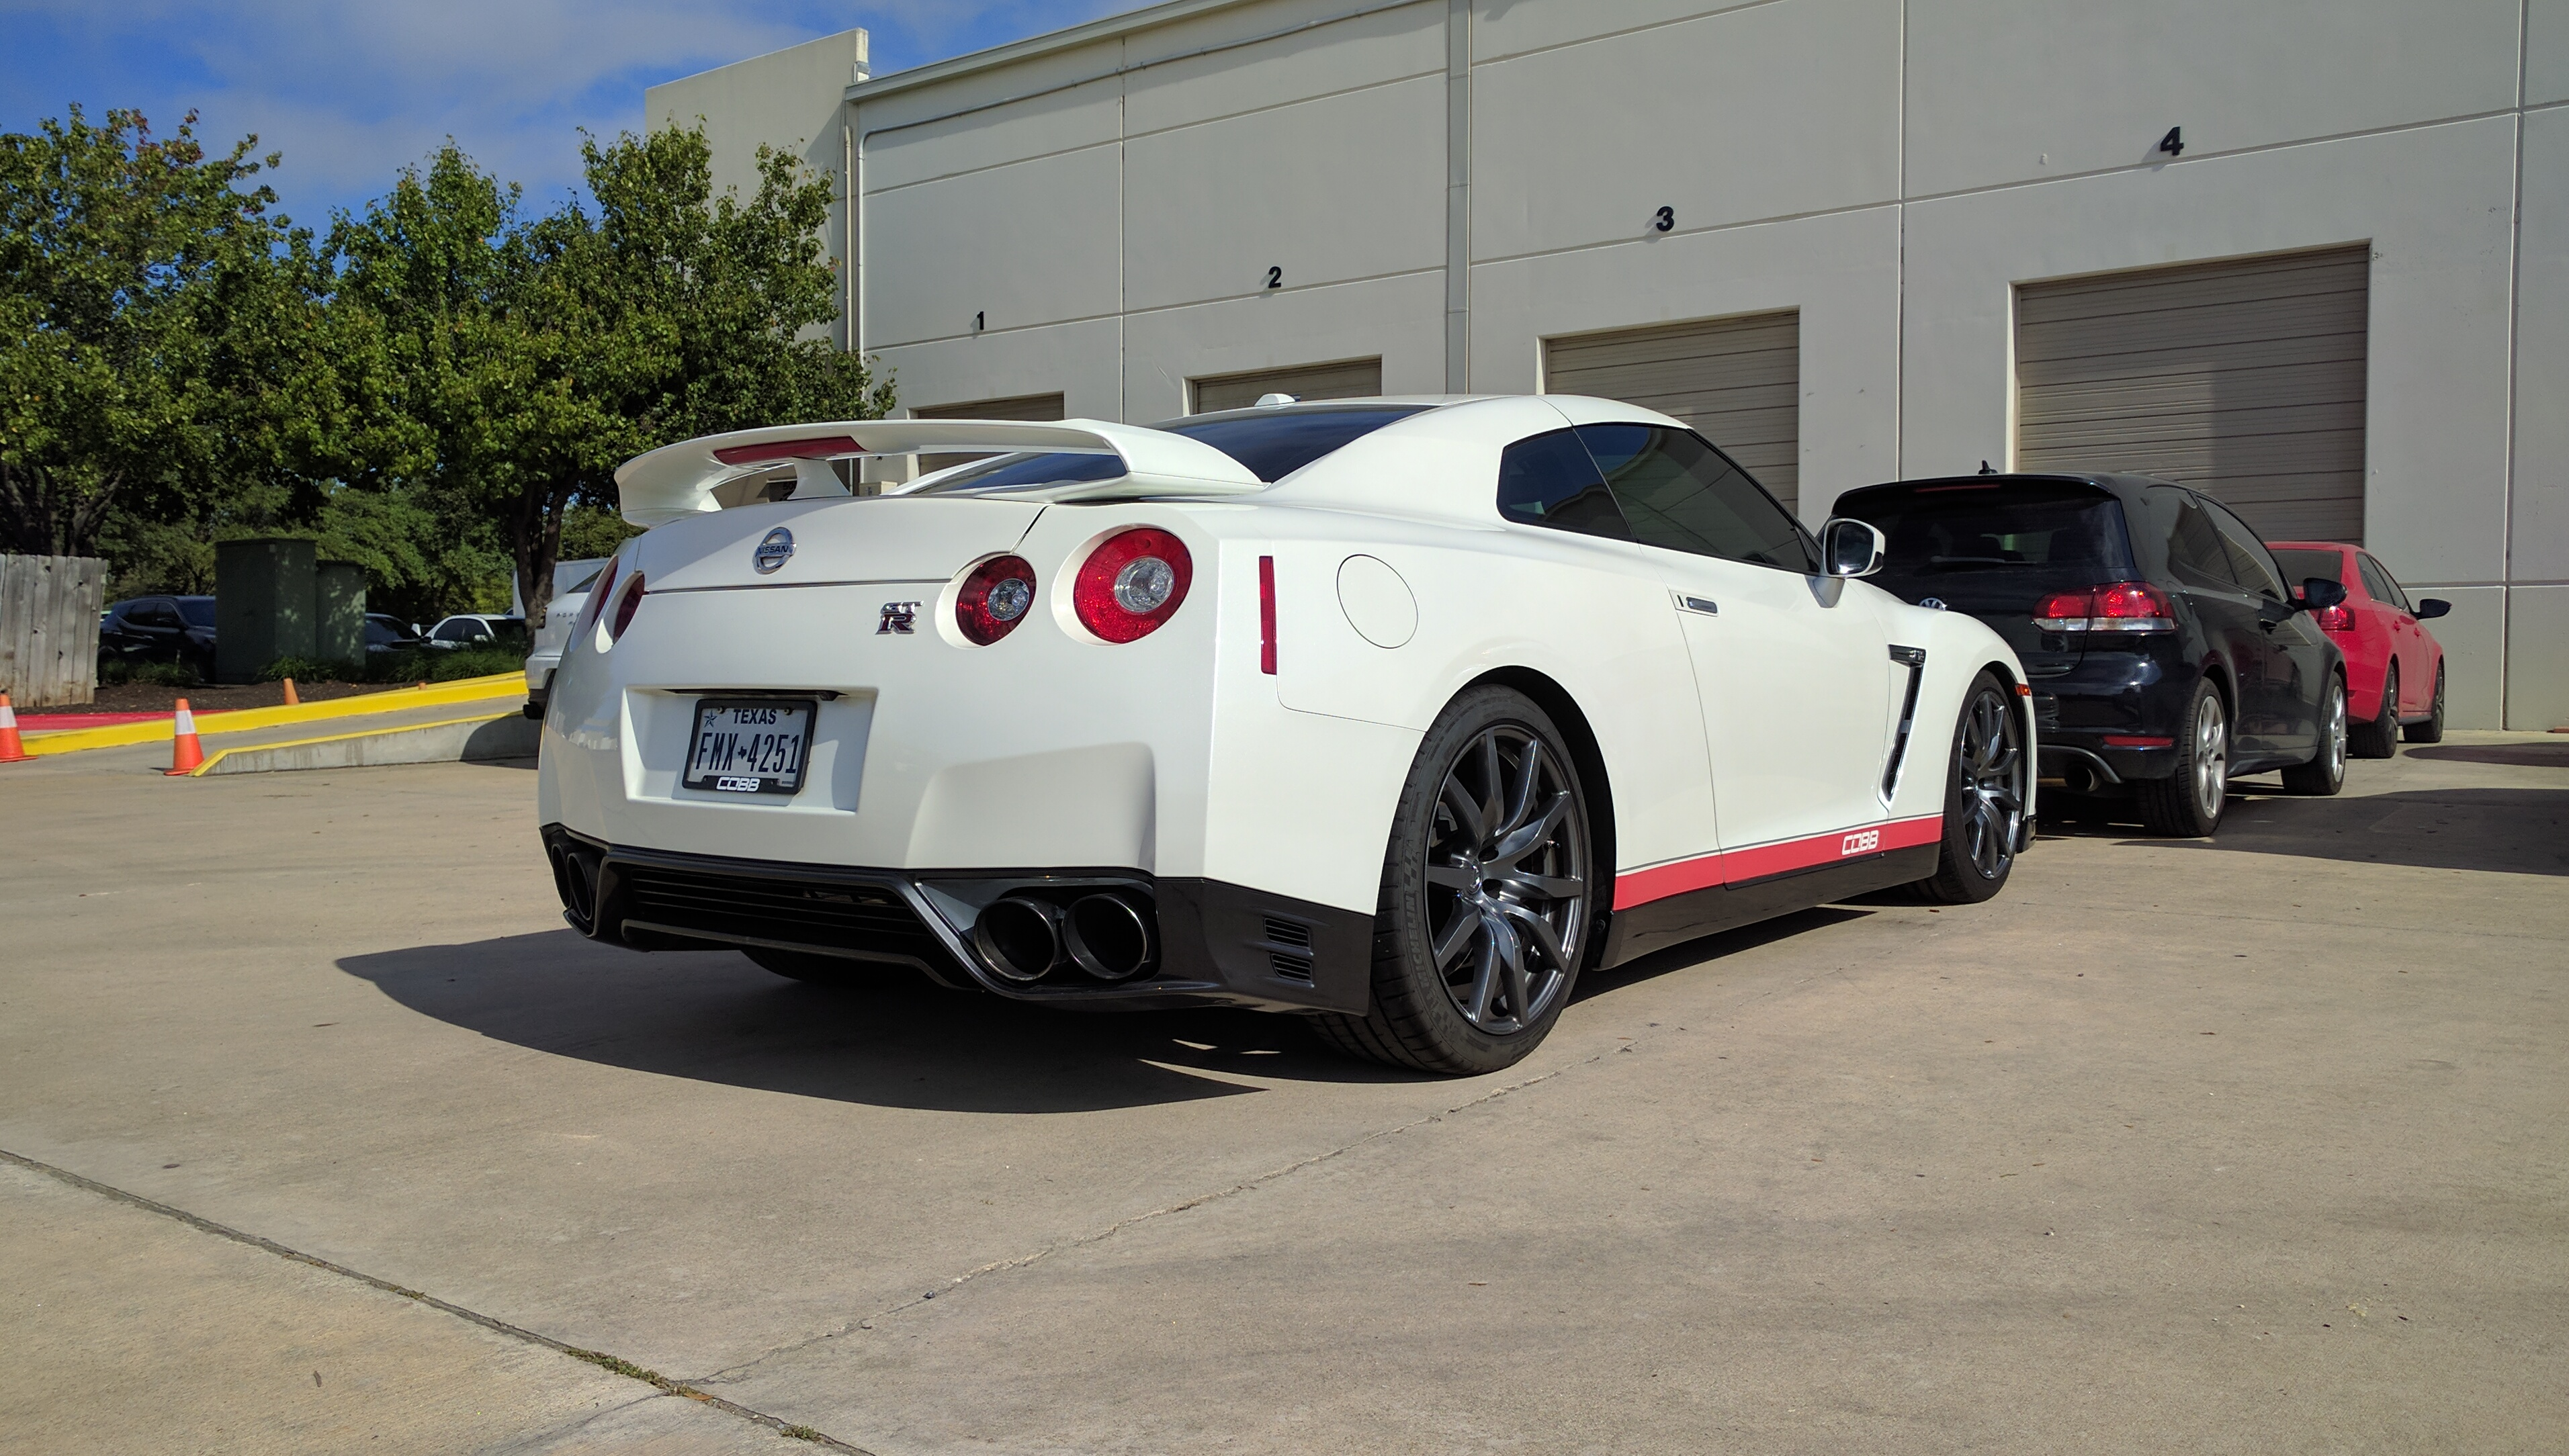 The COBB GTR at their Austin, TX HQ